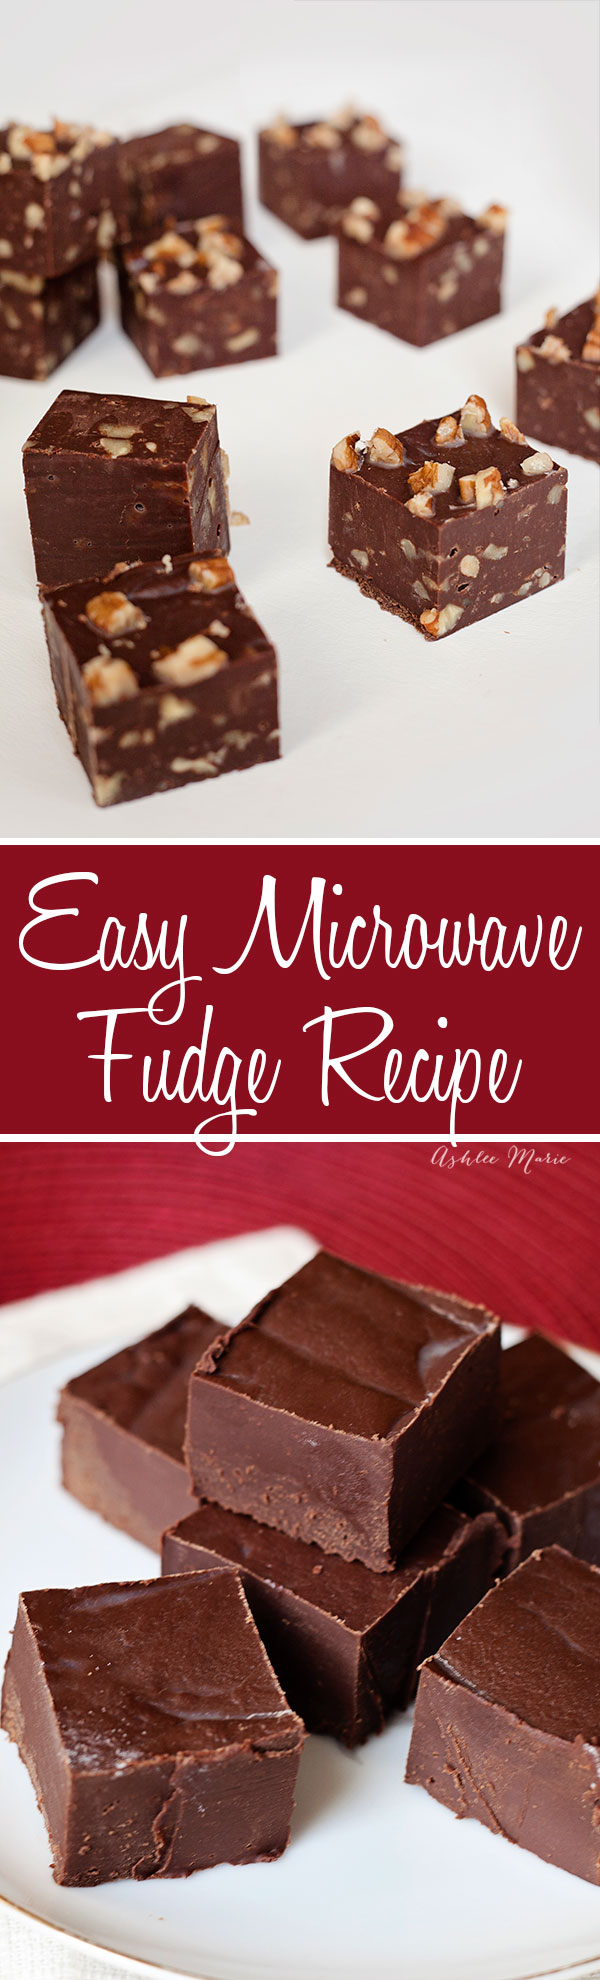 This microwave fudge is easy, fast and delicious